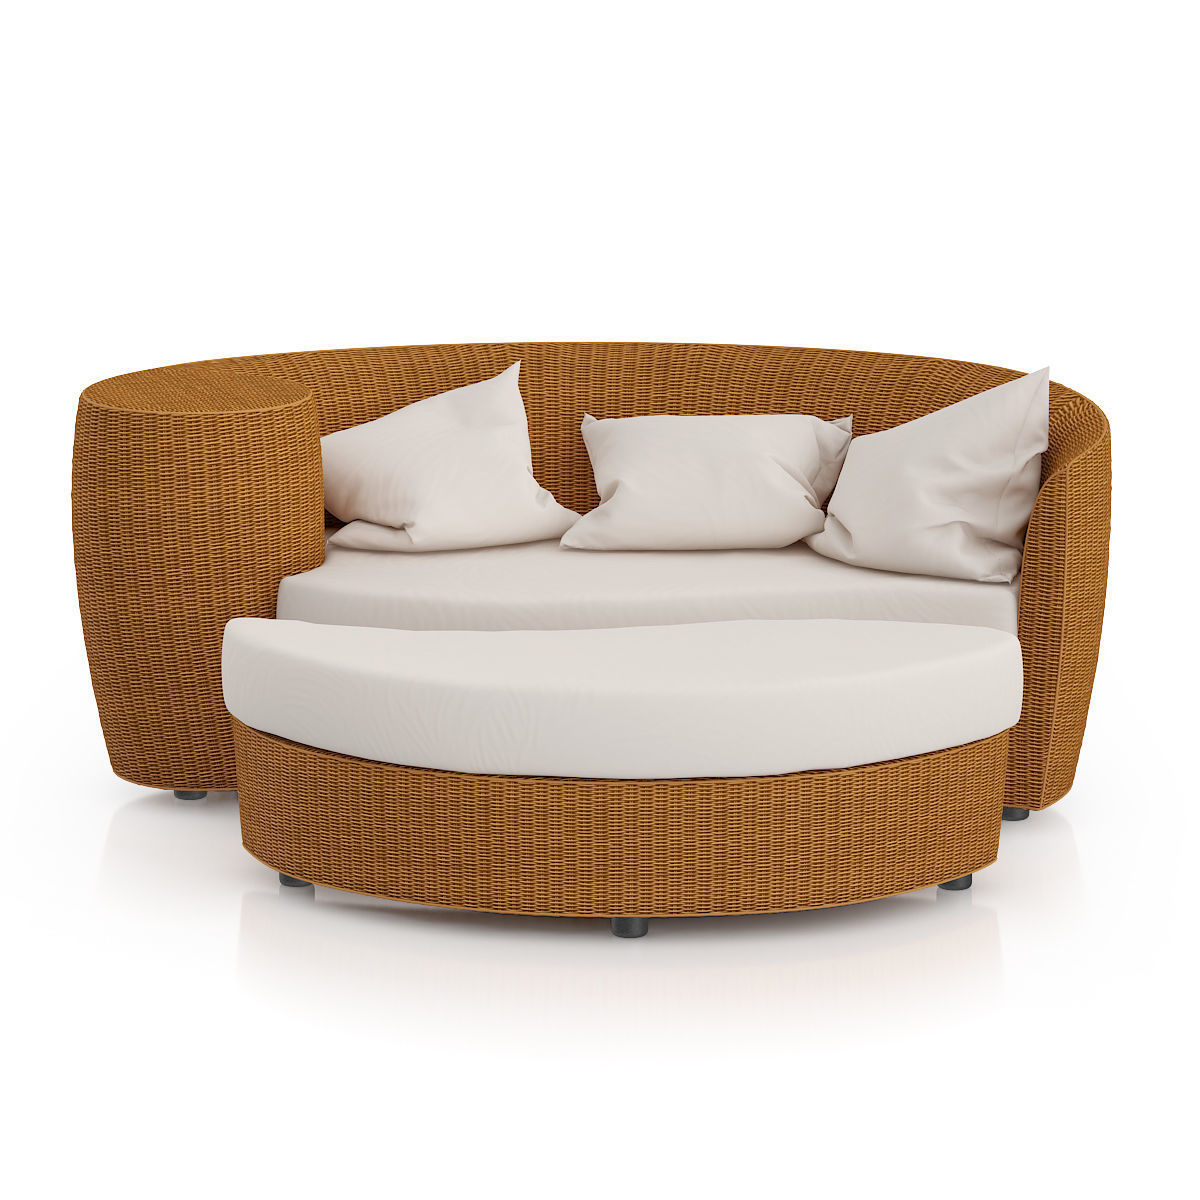 Wicker Sofa With Footrest Model